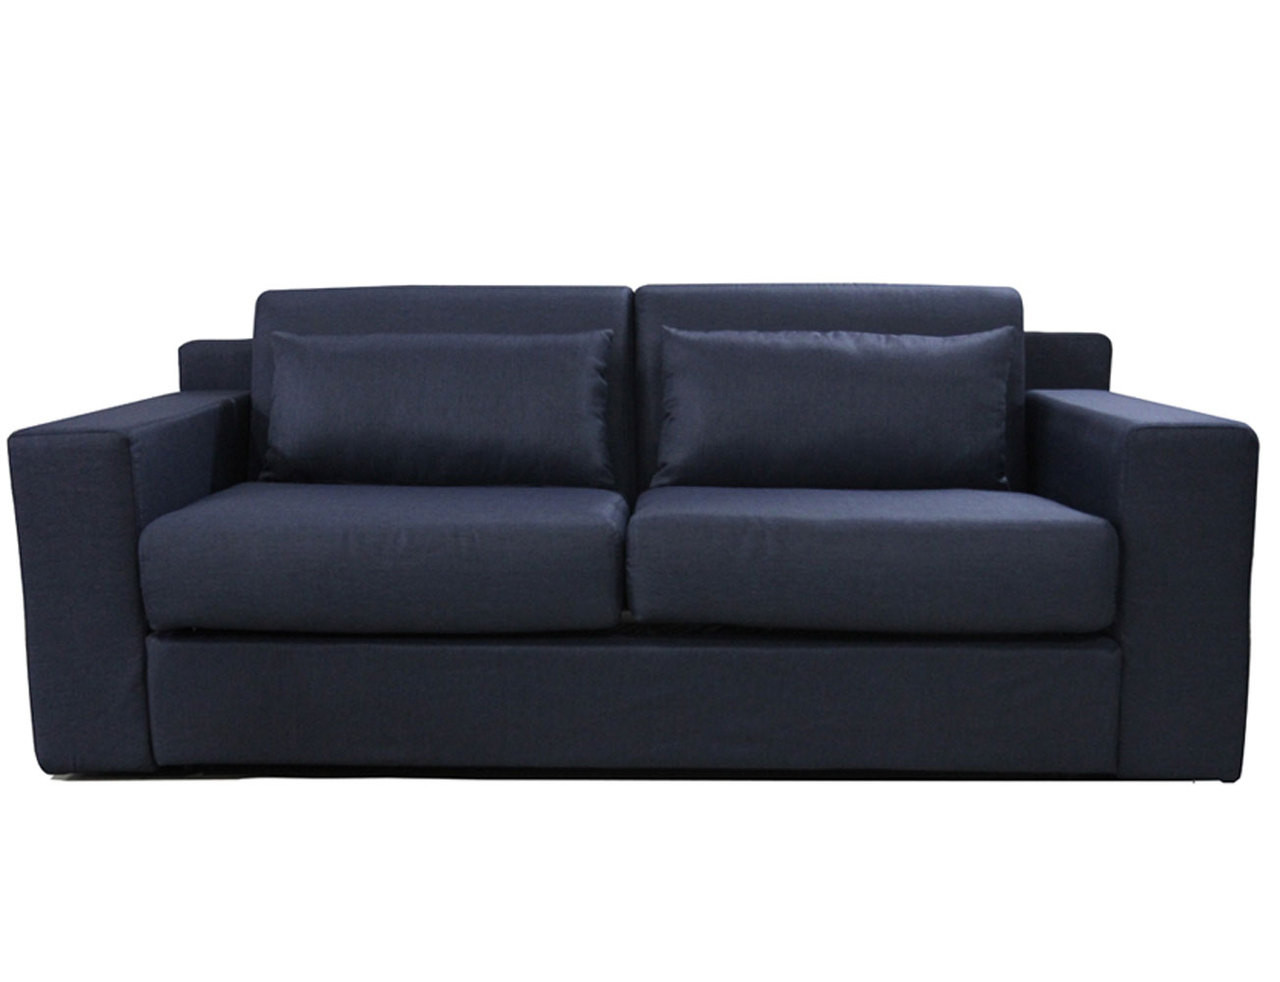 Sofa bed pull out 28 images 3021 grey pull out sofa bed furniture bedroom pull out sofa bed Loveseat with pullout bed